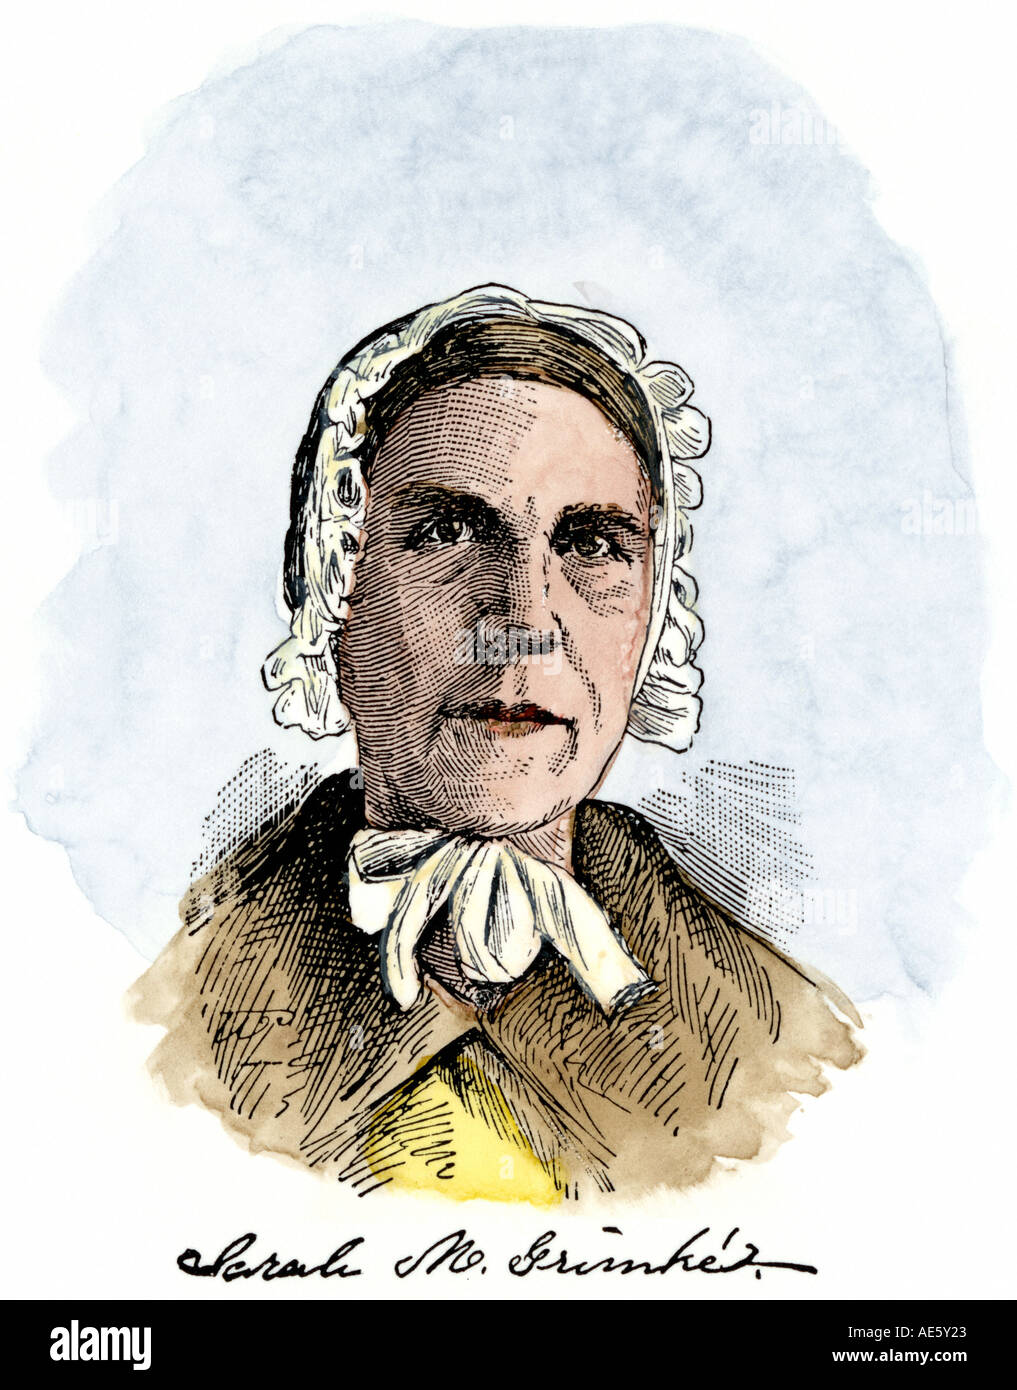 Sarah Moore Grimke portrait with autograph. Hand-colored woodcut - Stock Image